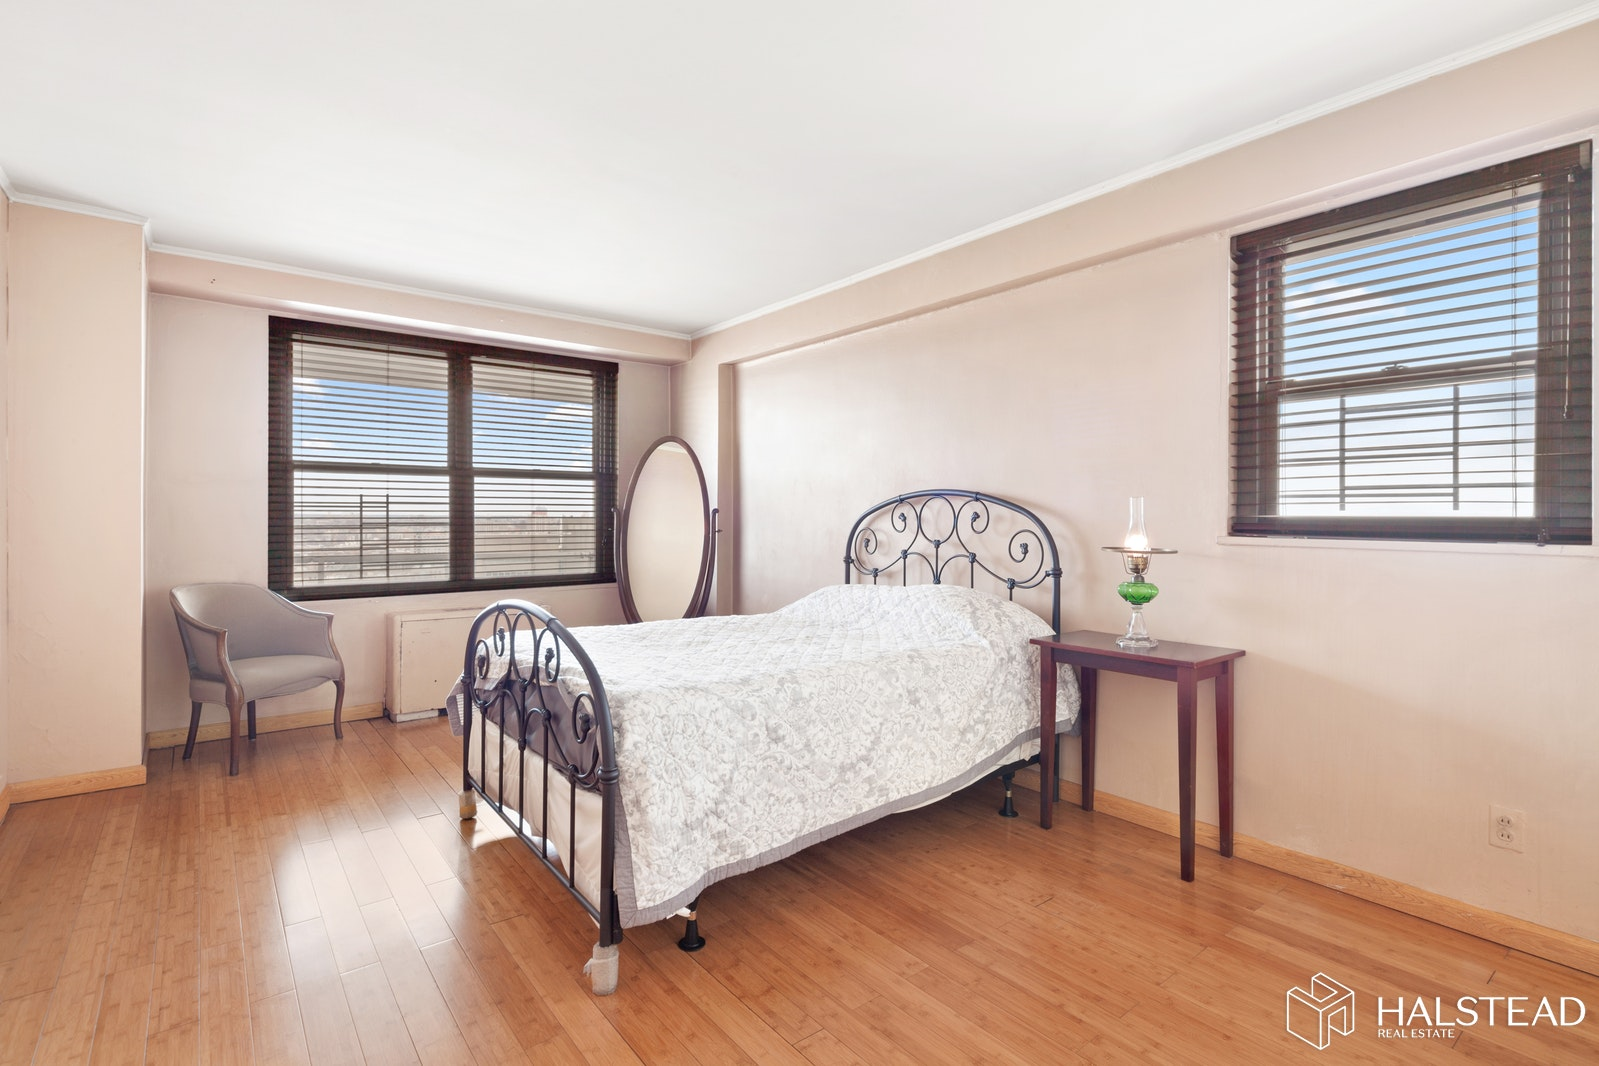 1020 Grand Concourse 23g, Concourse Village, New York, 10451, $399,000, Property For Sale, Halstead Real Estate, Photo 5